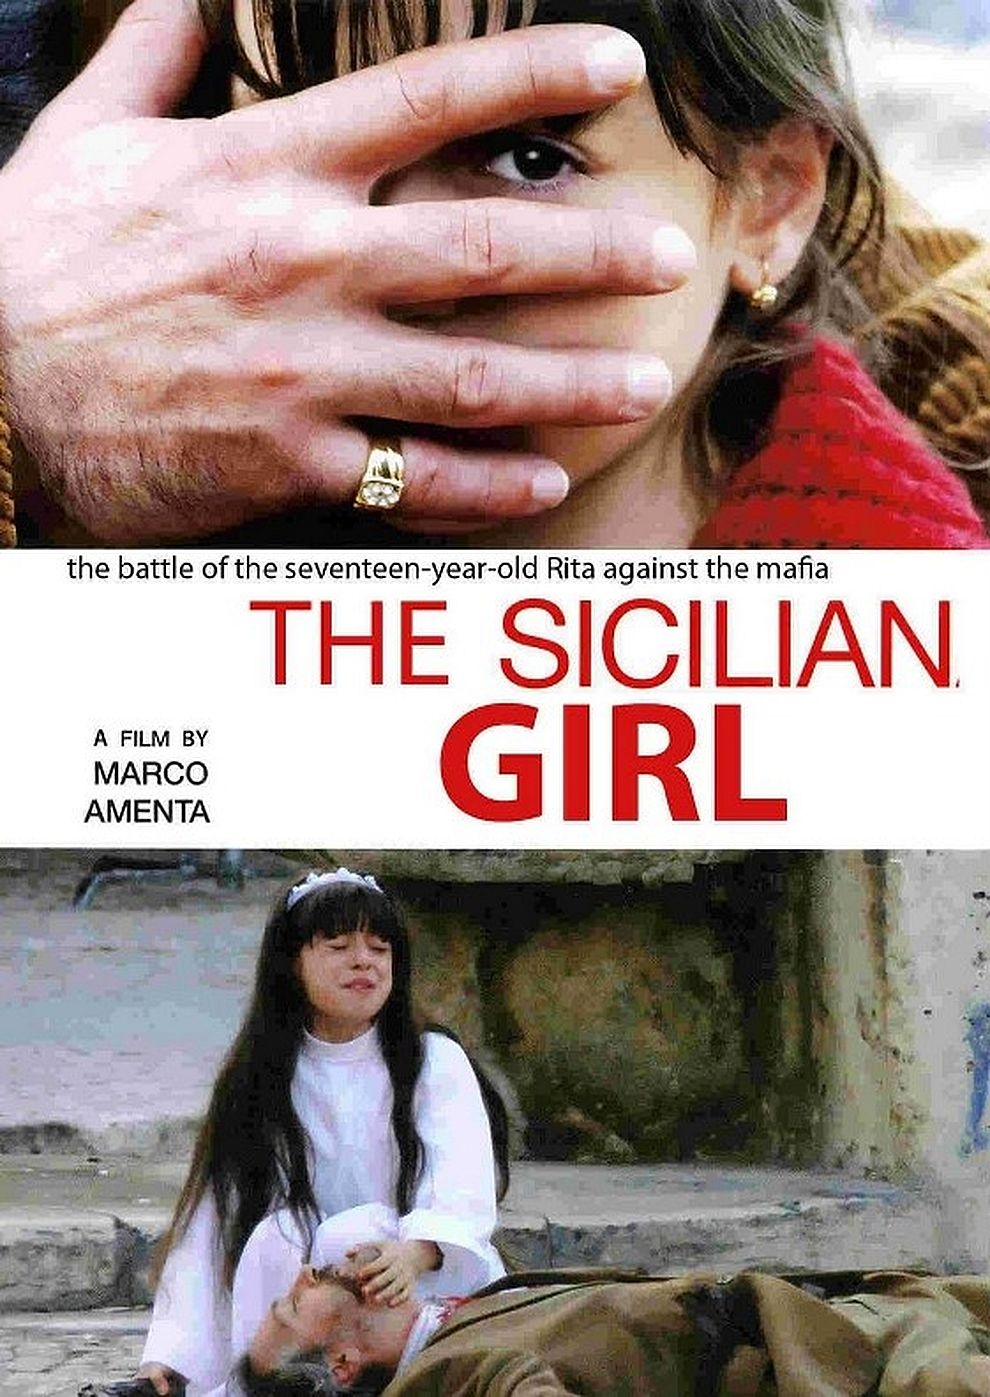 The Sicilian Girl (Poster)